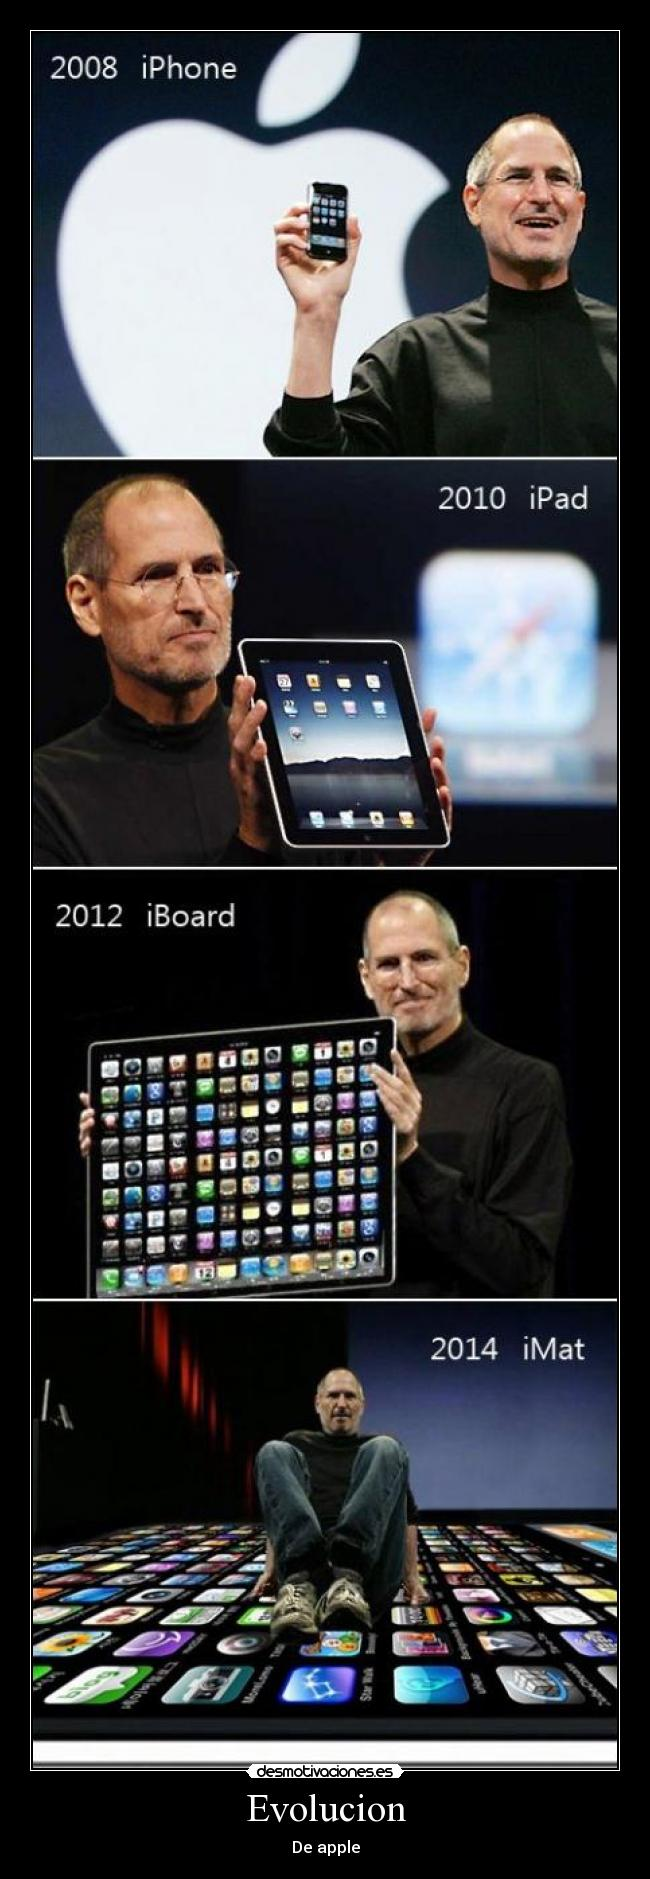 Evolucion - De apple